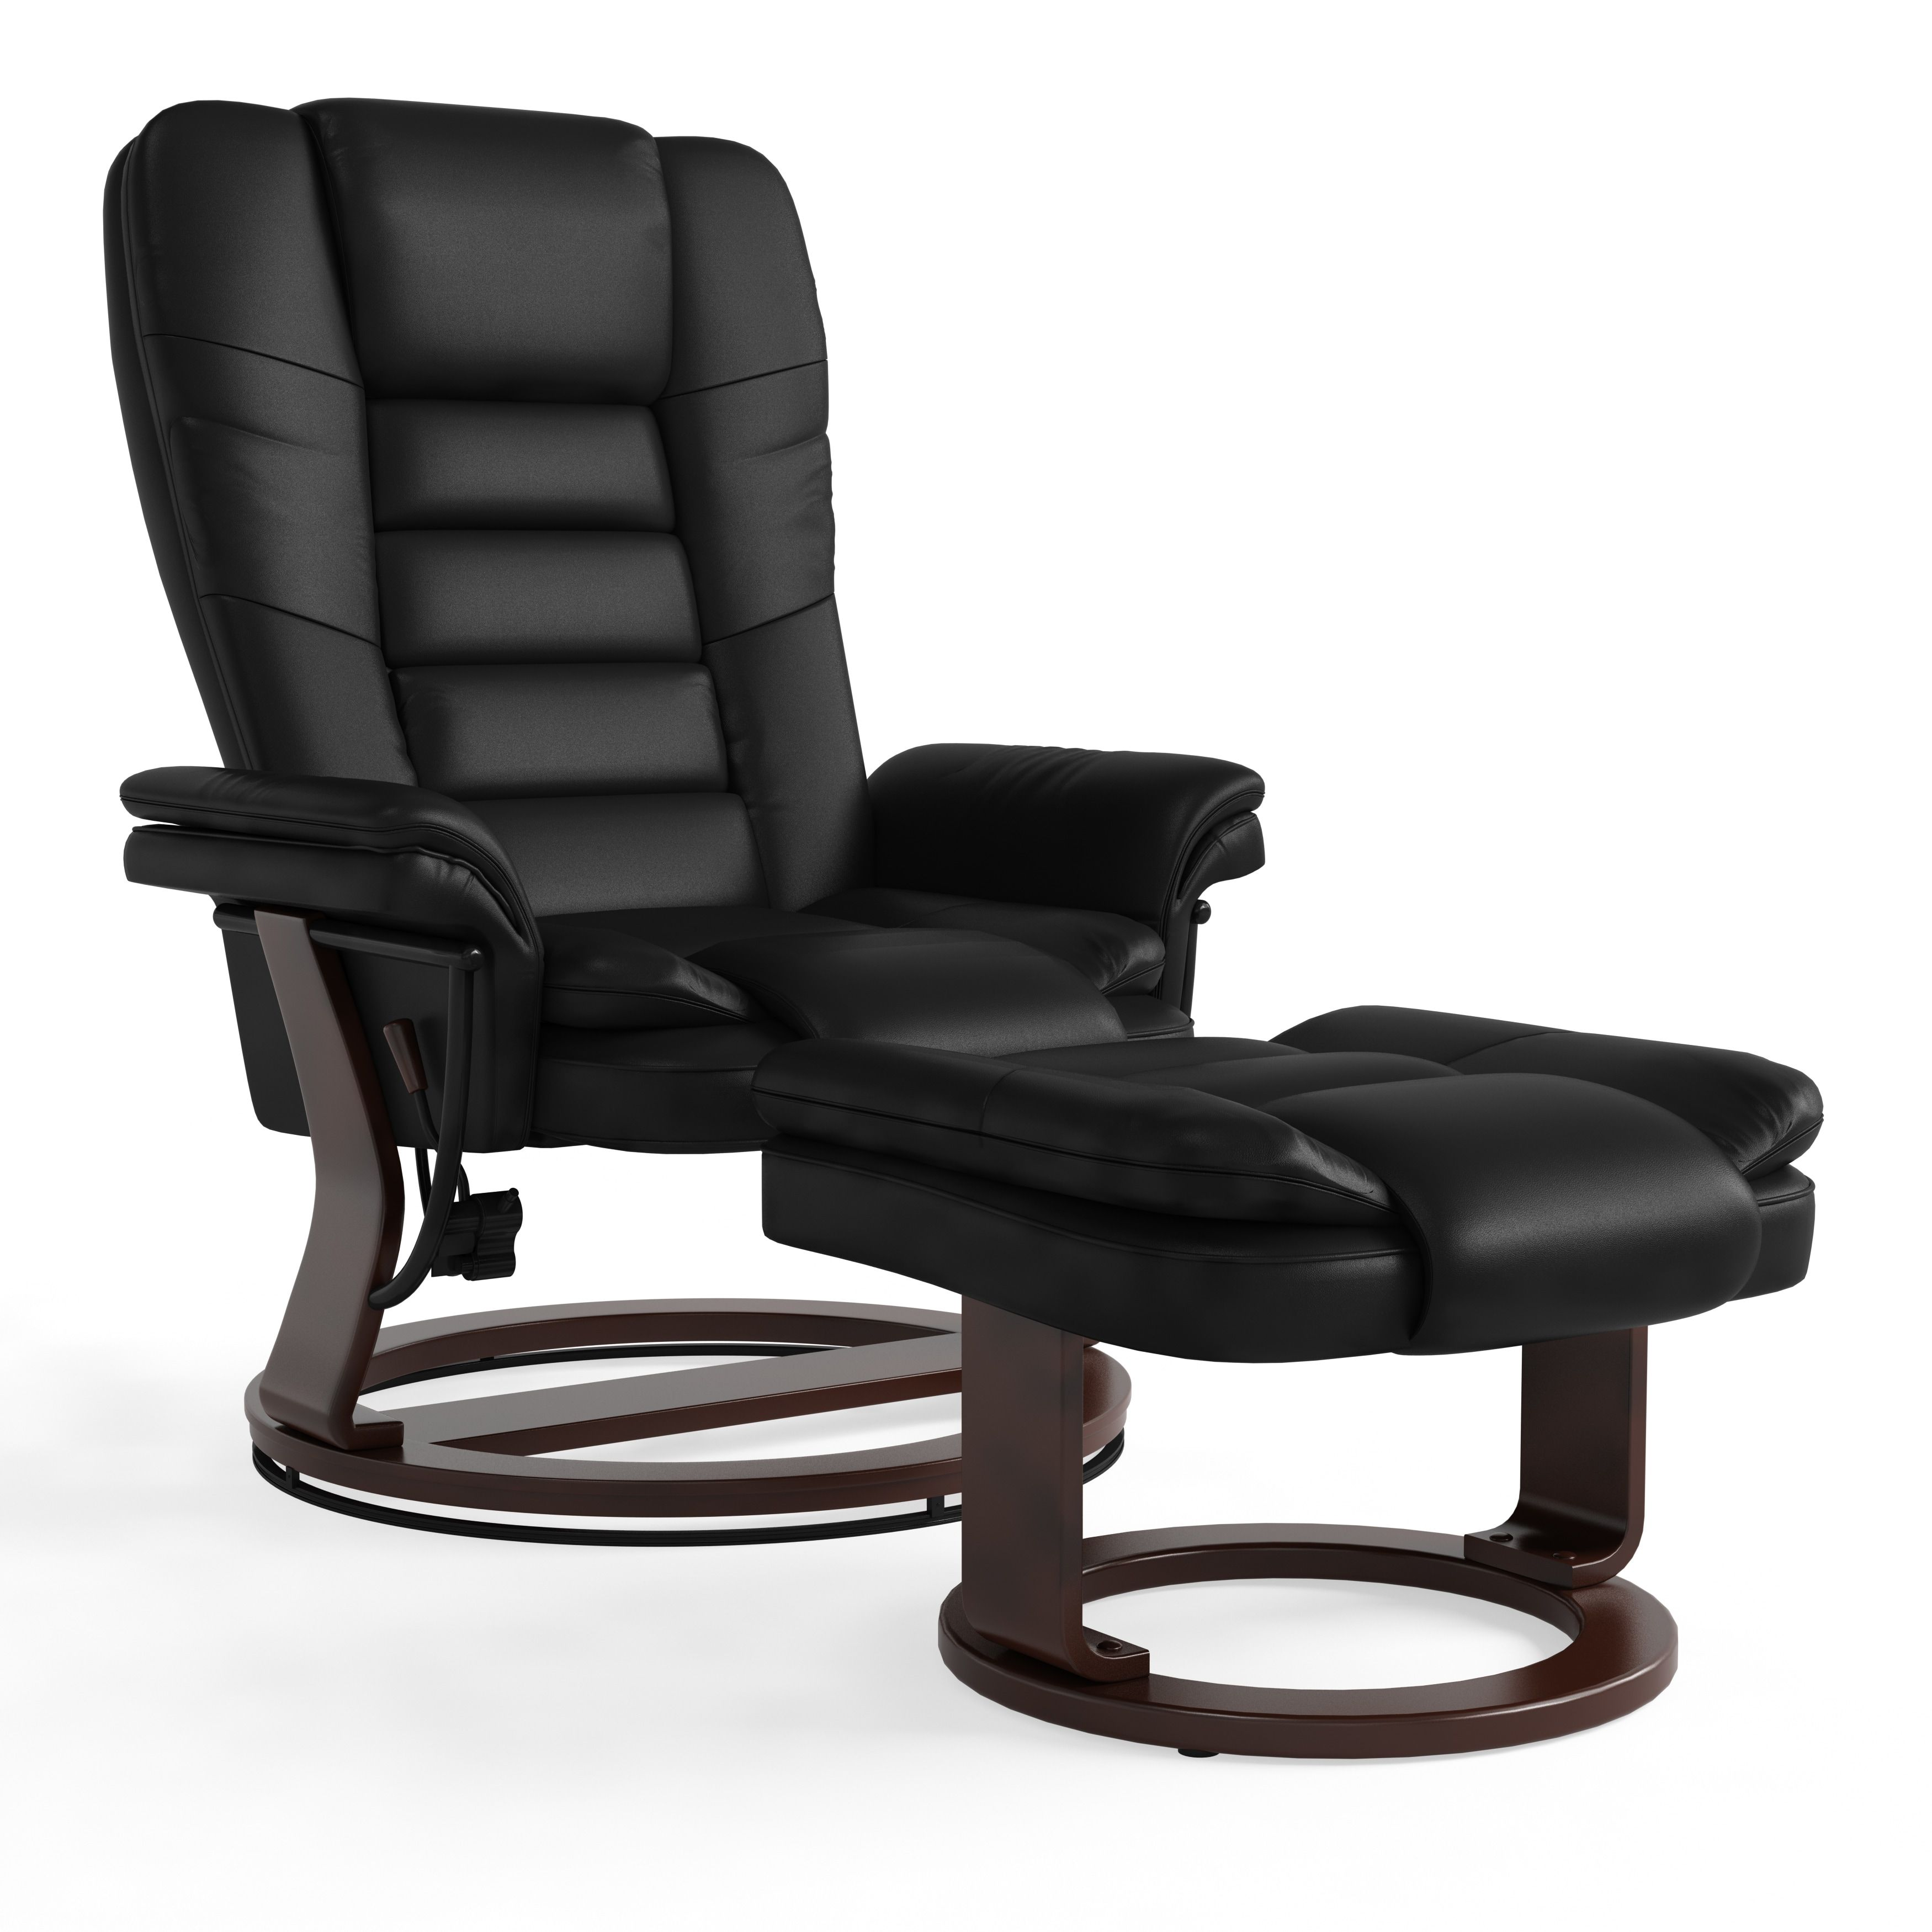 Astounding Copper Grove Gunnison Contemporary Leather Recliner And Dailytribune Chair Design For Home Dailytribuneorg